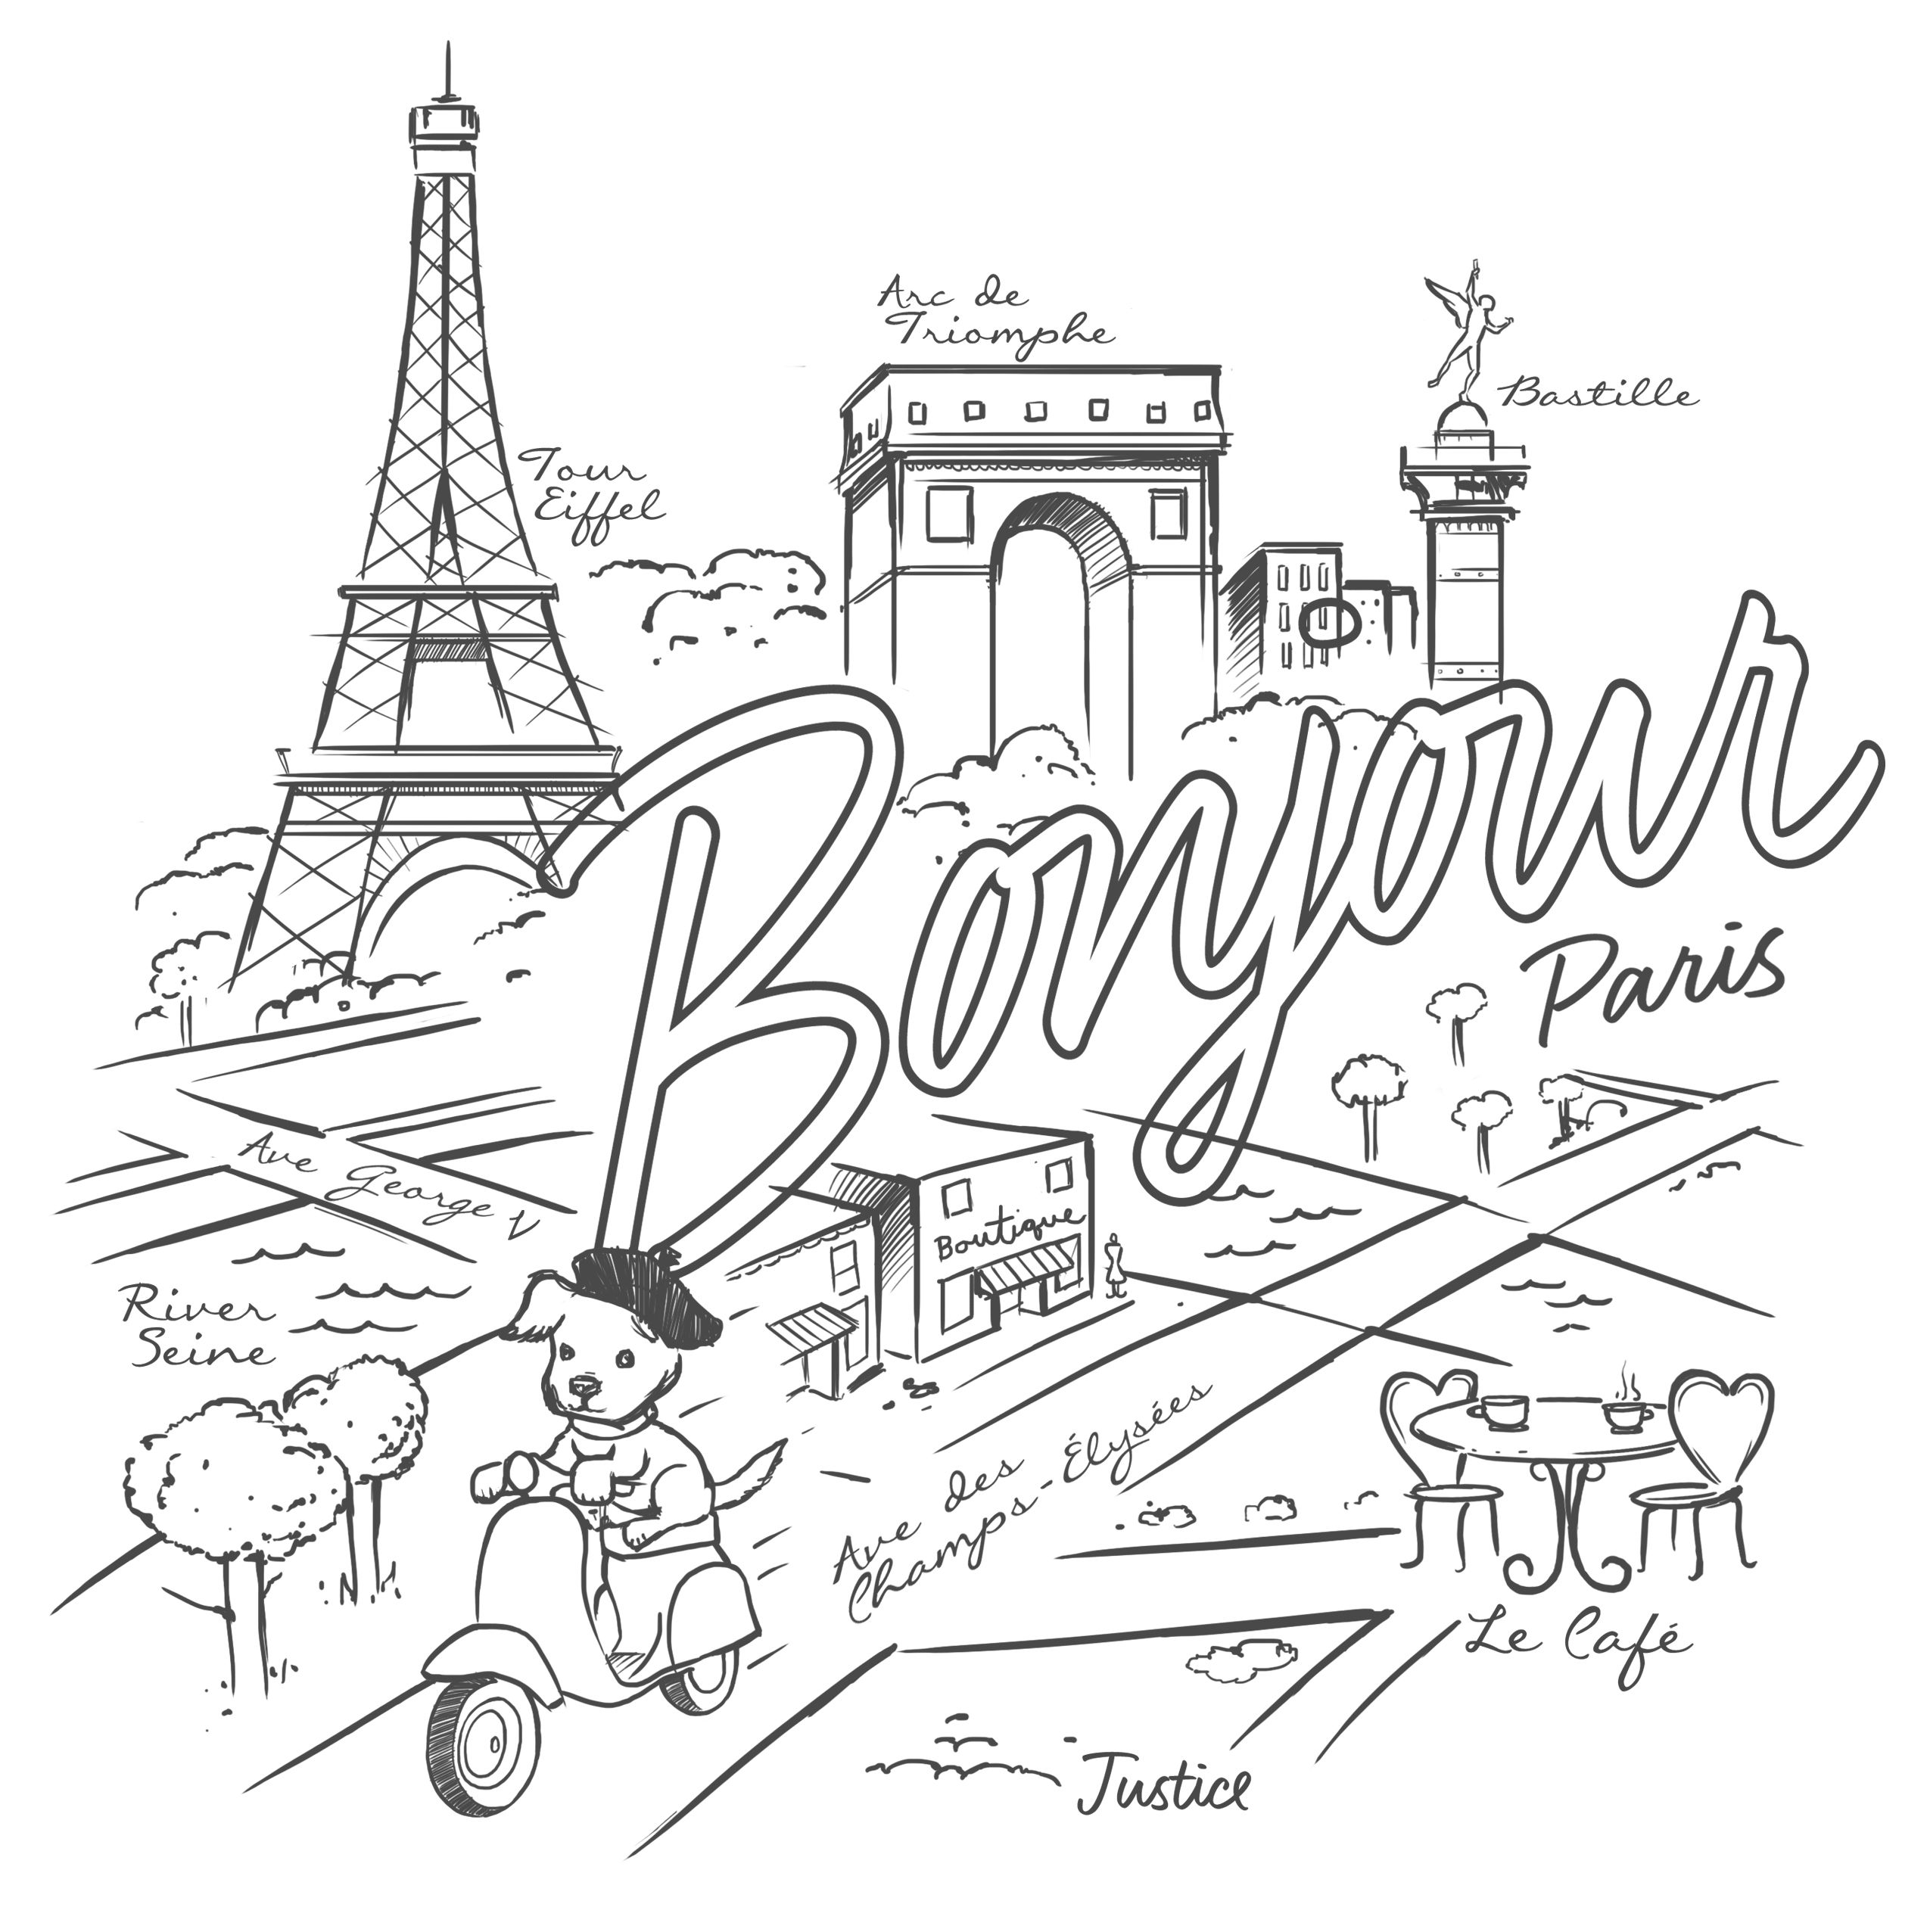 Feeling Creative Oui Oui Print This Coloring Page And Make It Pretty